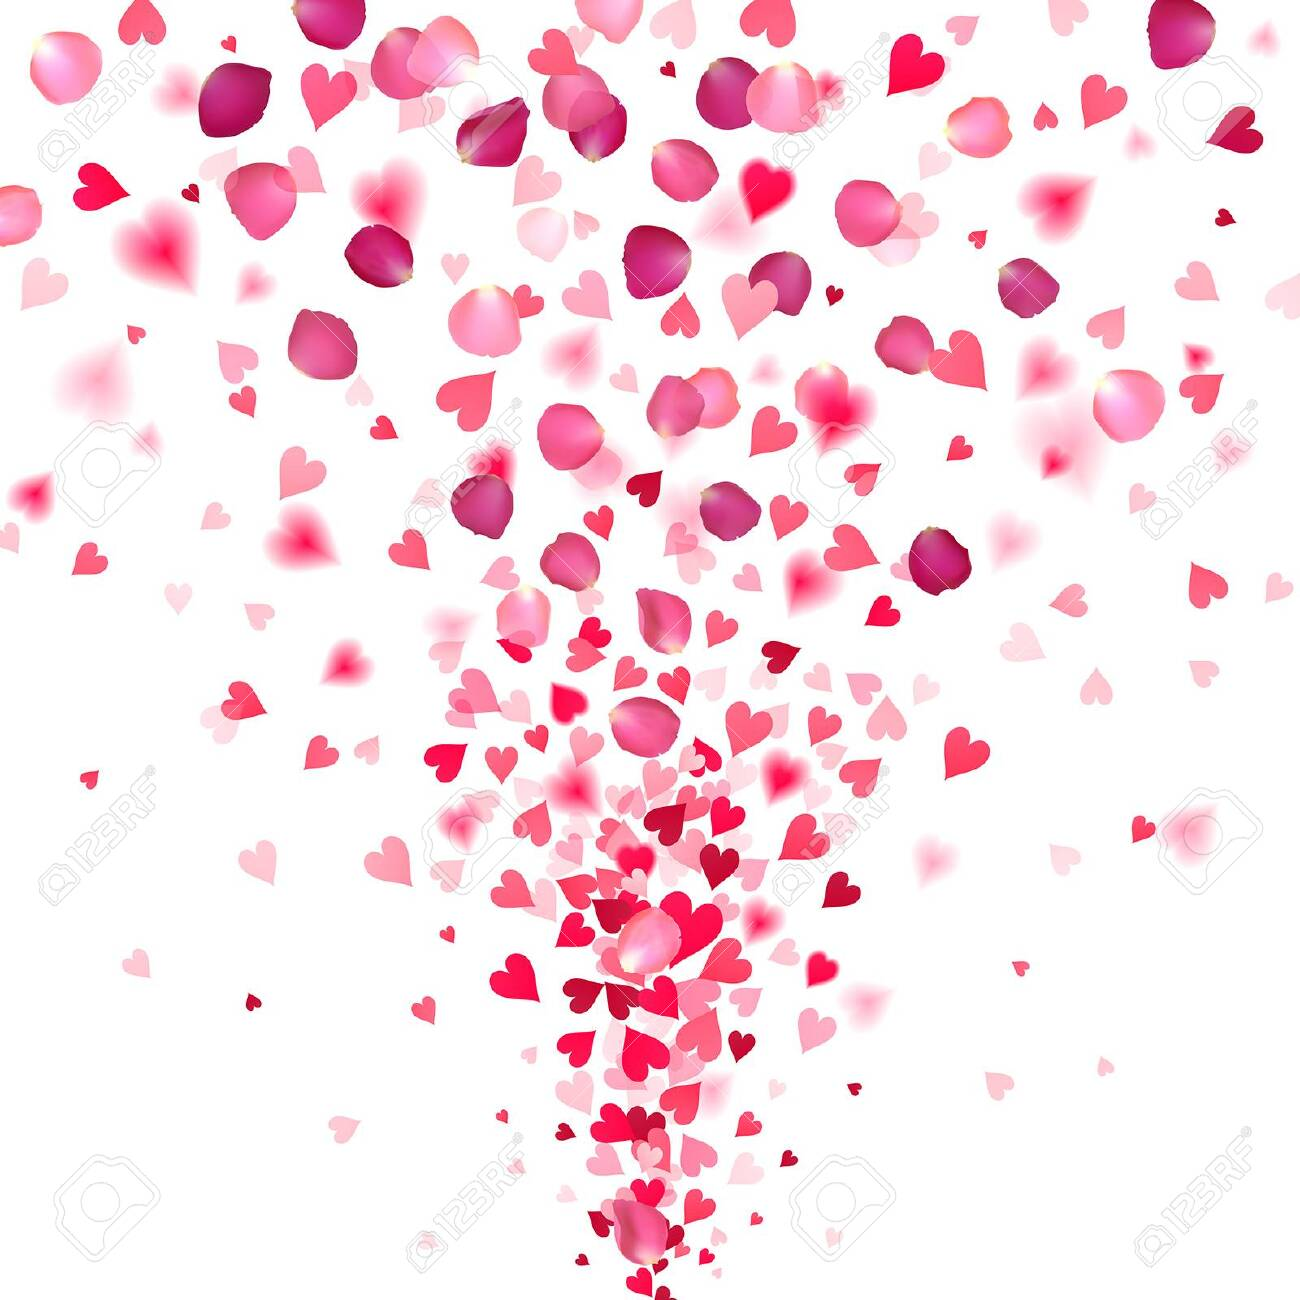 explosion of confetti from red hearts and rose petals on a white background - 137783700